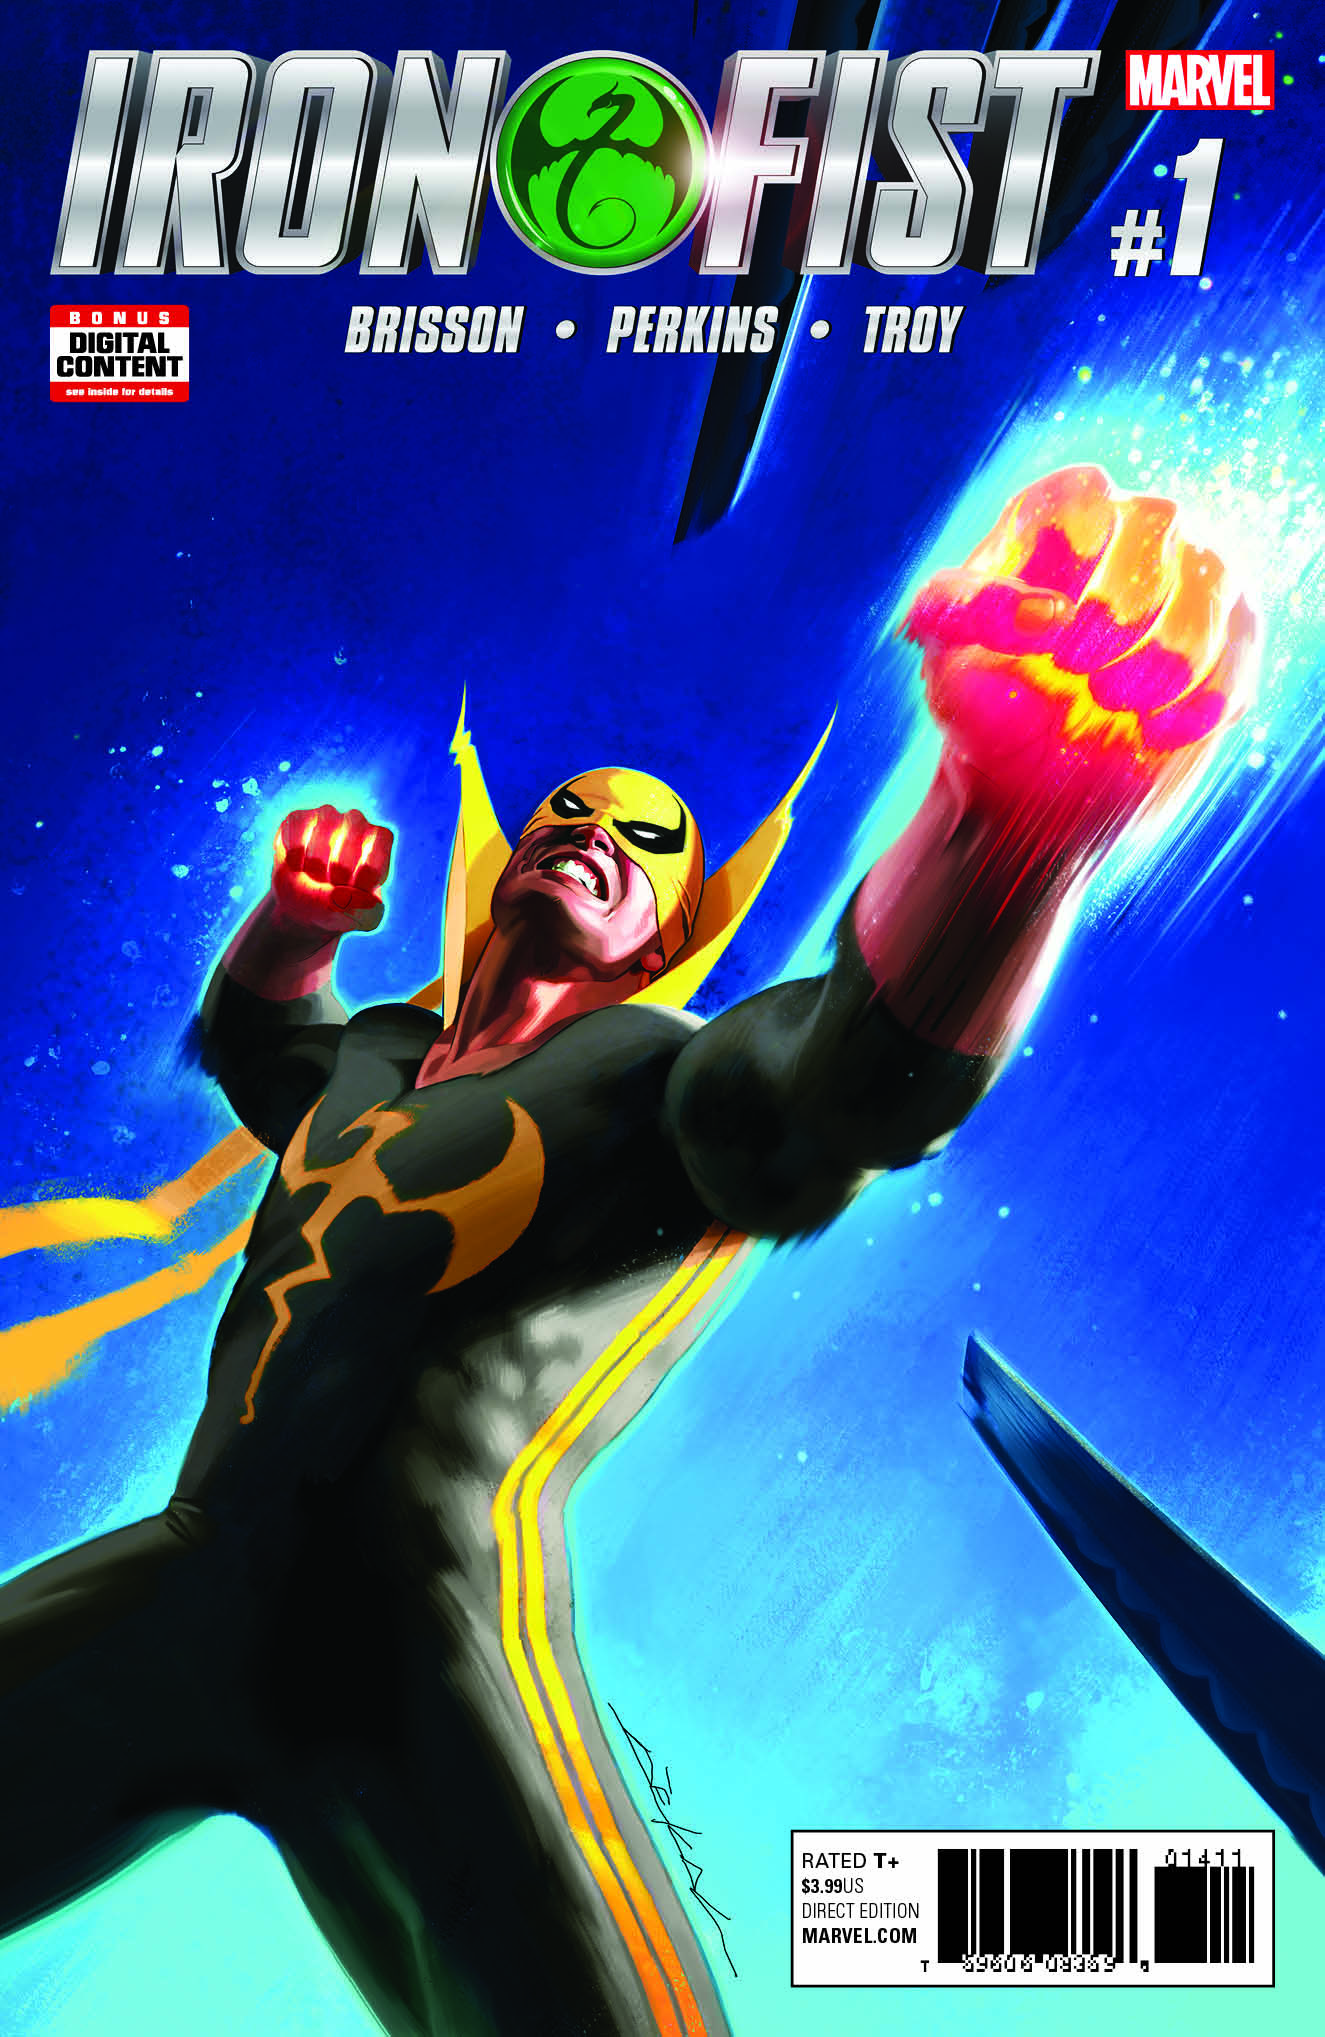 Iron Fist #1 Packs a Mean Punch This March – a First Look!